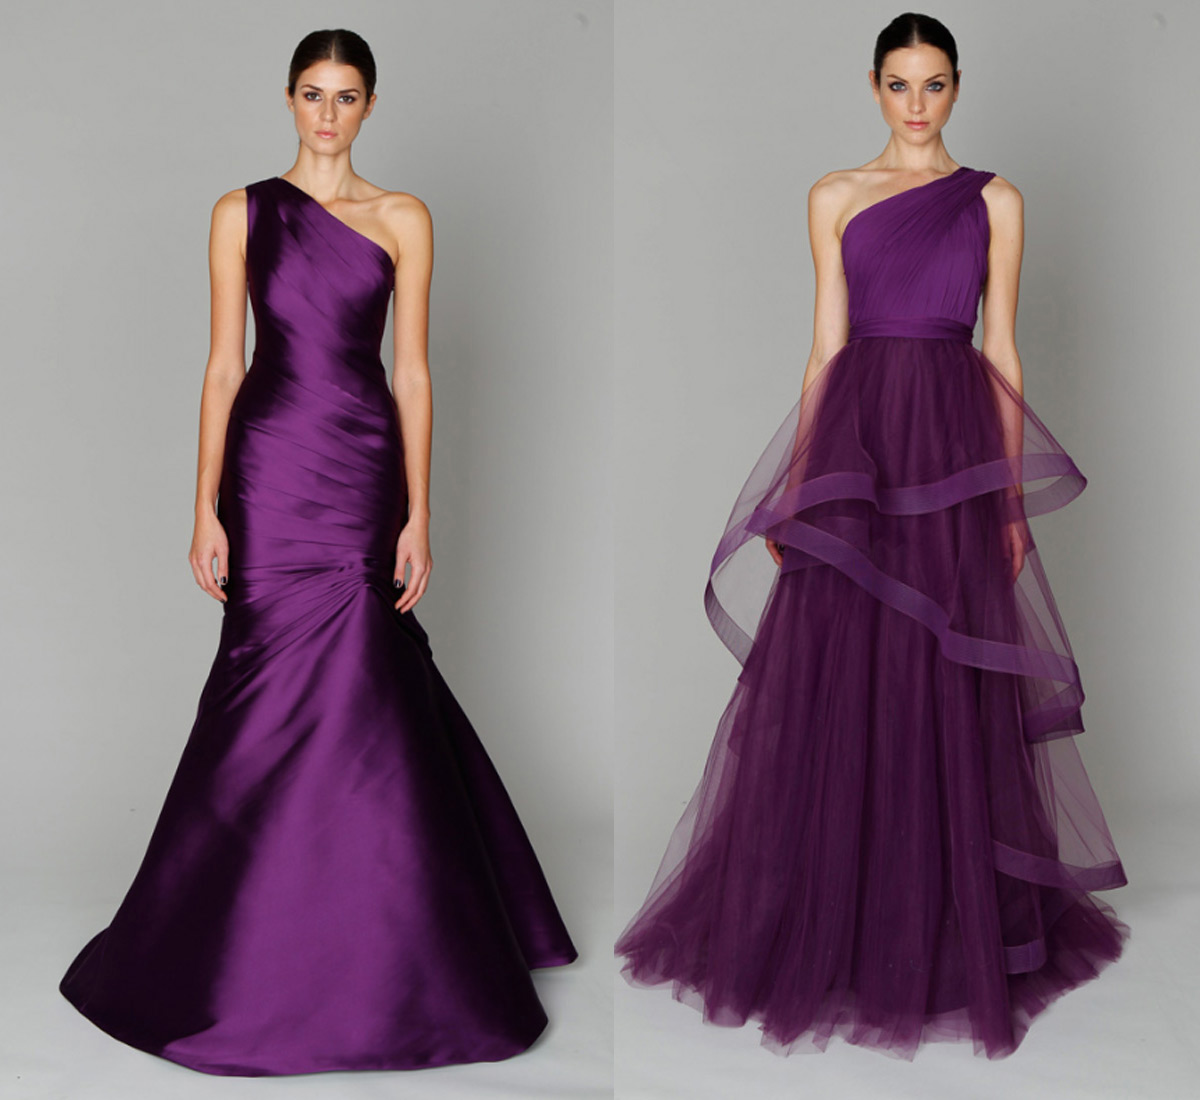 Plus Size Women's Dresses | Evening Gowns  Formal